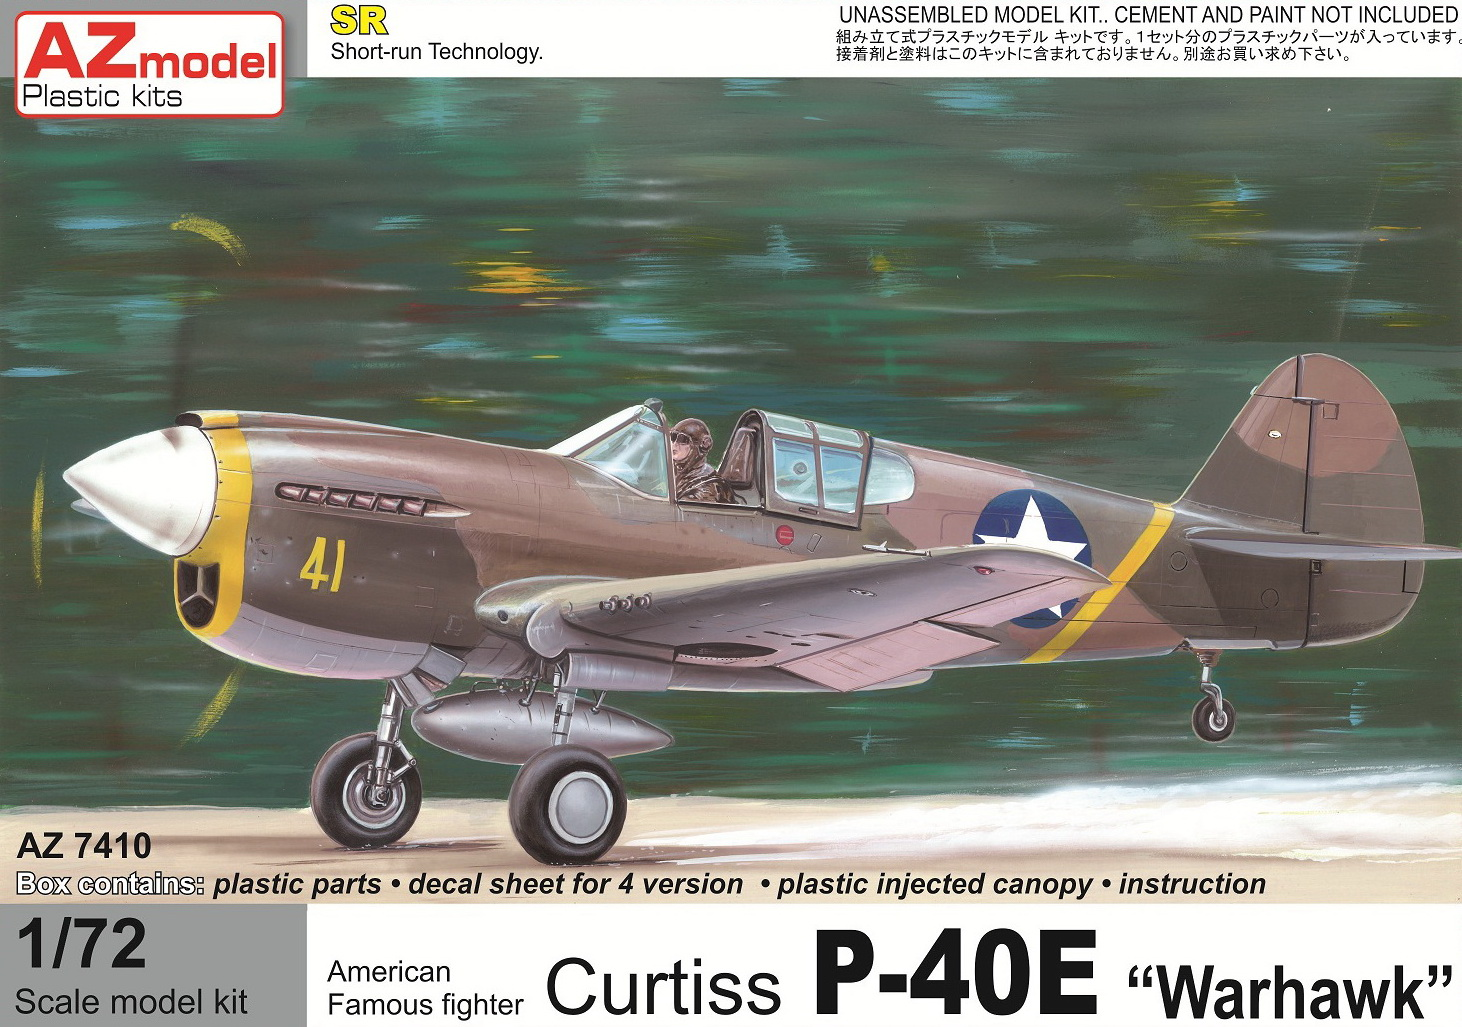 kit helicopters for sale with Az7410 Curtiss P 40e Warhawk on Watch besides Helicycle in addition Reviews Of Todays Best Radio Controlled Airplanes in addition Az7410 Curtiss P 40e Warhawk in addition Sw72107 Fj 2 Fury.